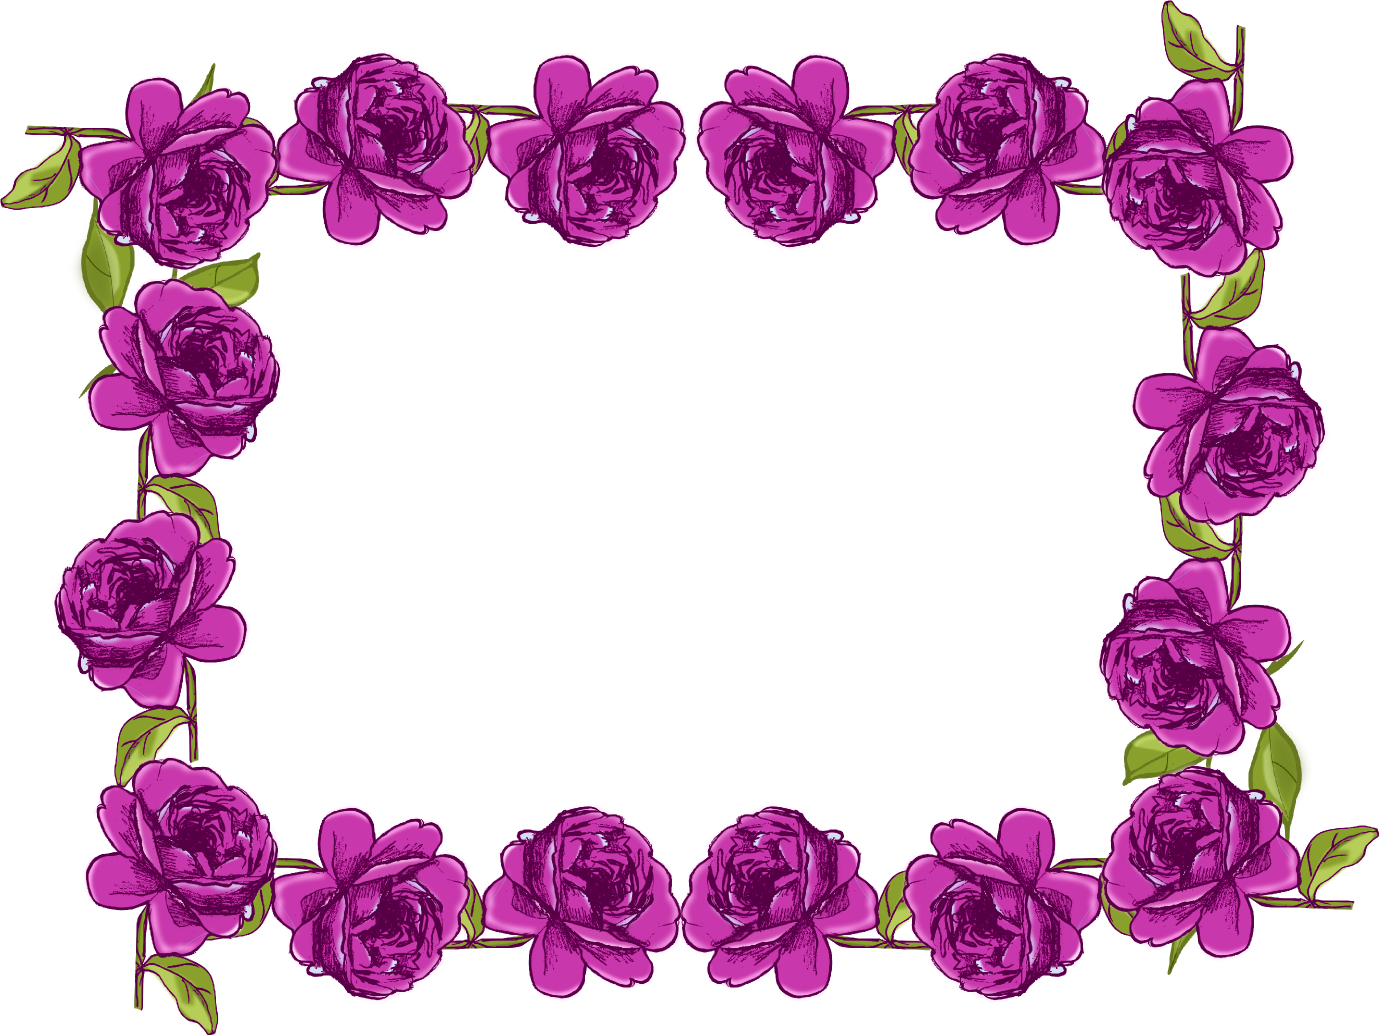 ... Rose Flower Clipart Get This Purple Rose Flower Clipart - Clipart Kid